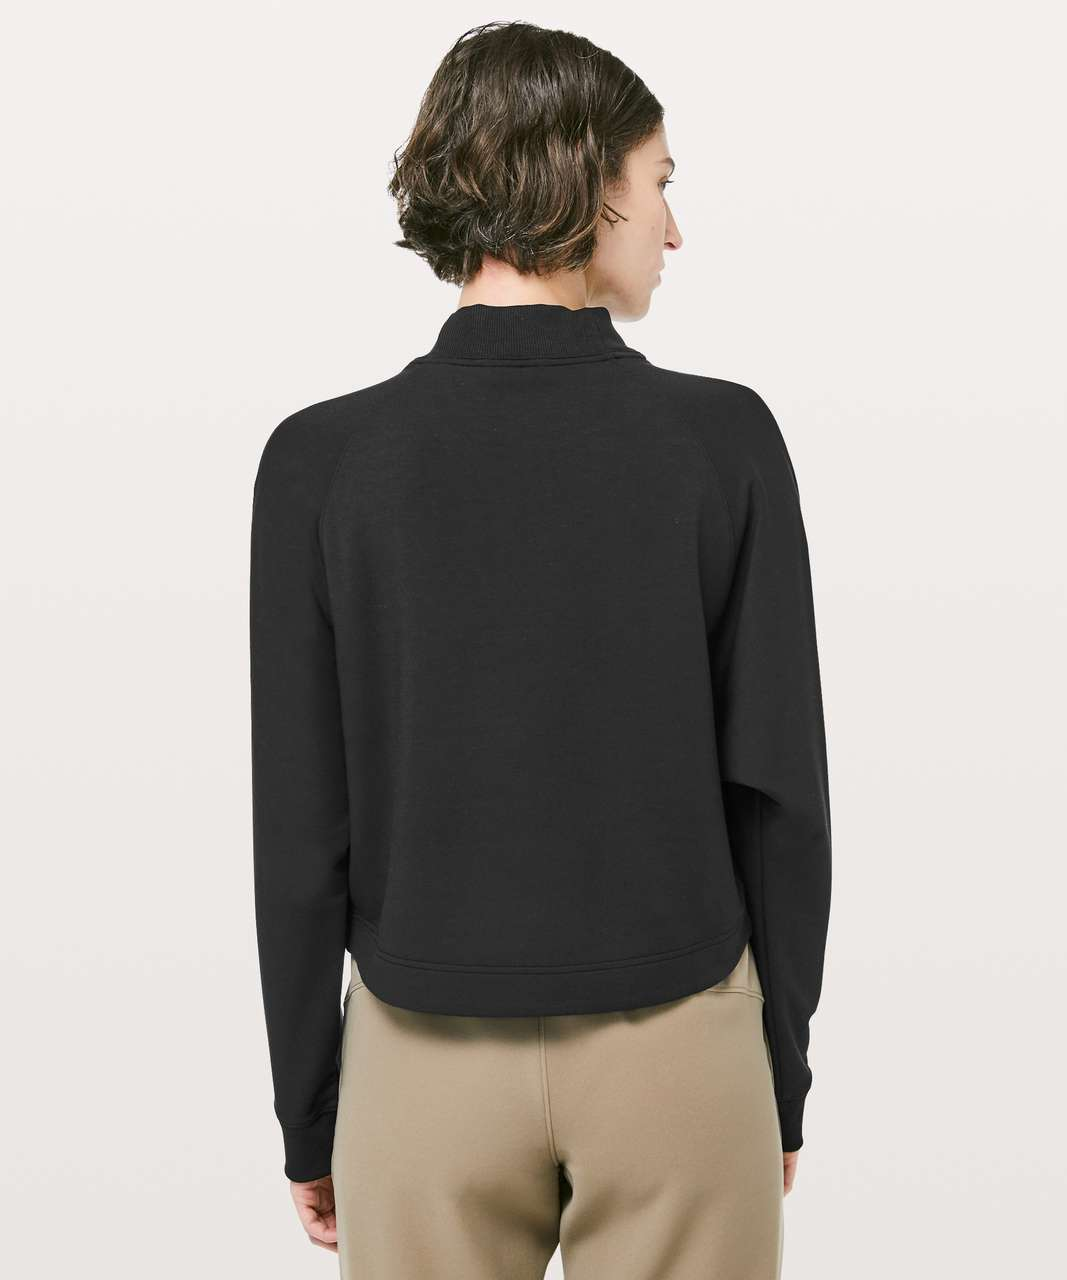 Lululemon Up High Pullover - Black